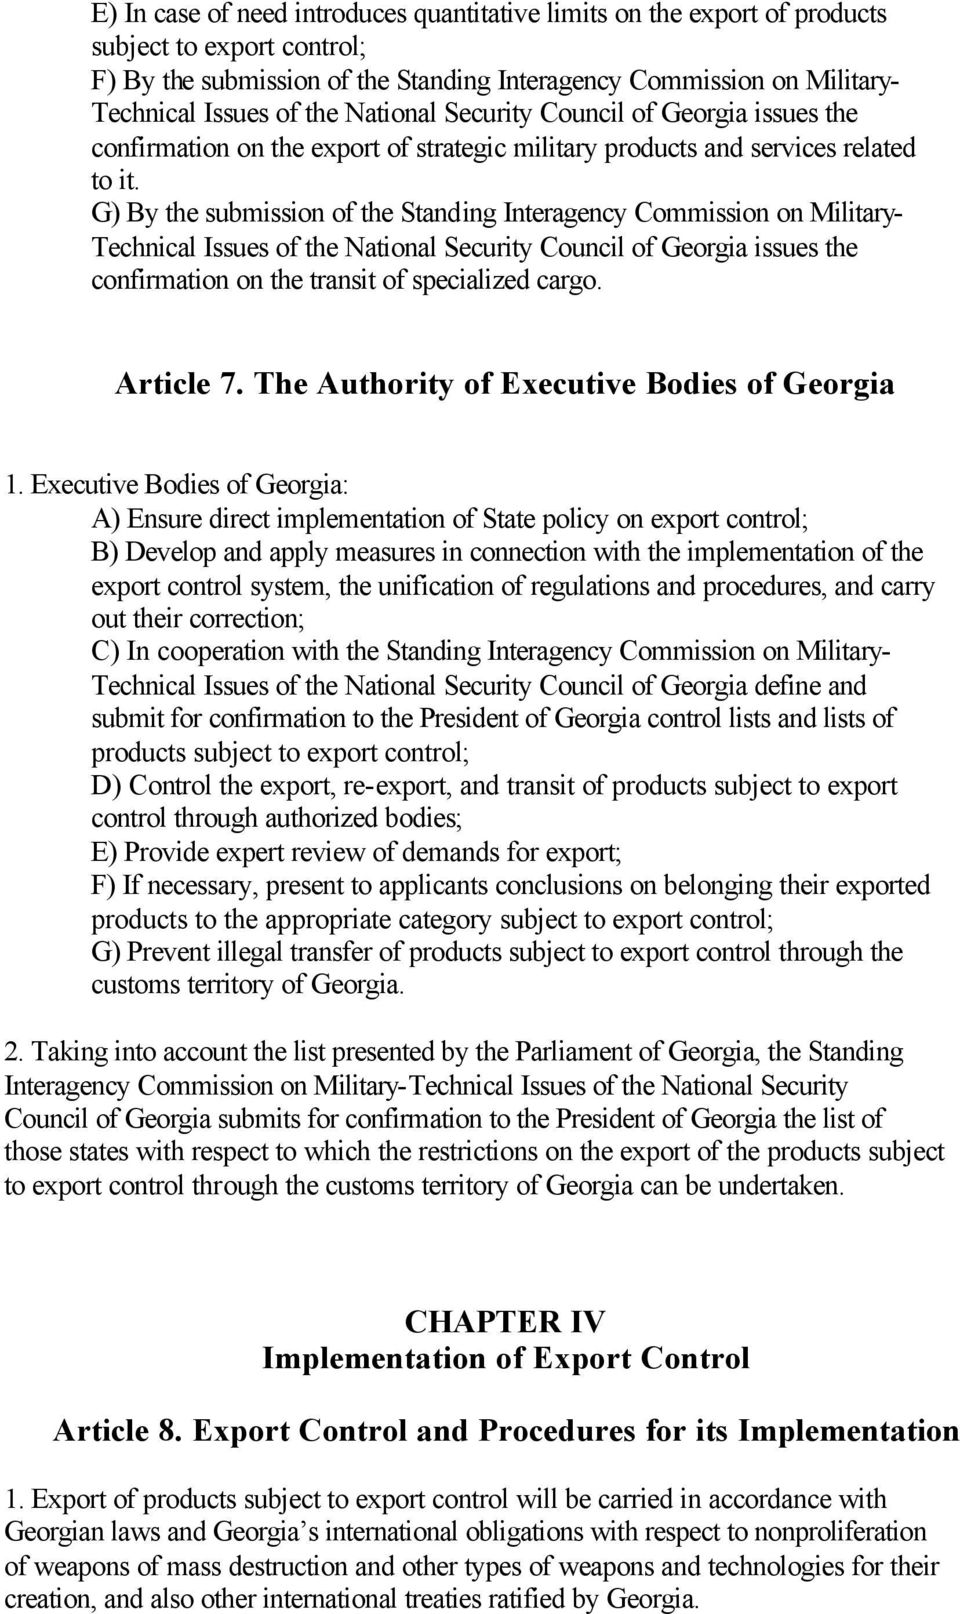 G) By the submission of the Standing Interagency Commission on Military- Technical Issues of the National Security Council of Georgia issues the confirmation on the transit of specialized cargo.